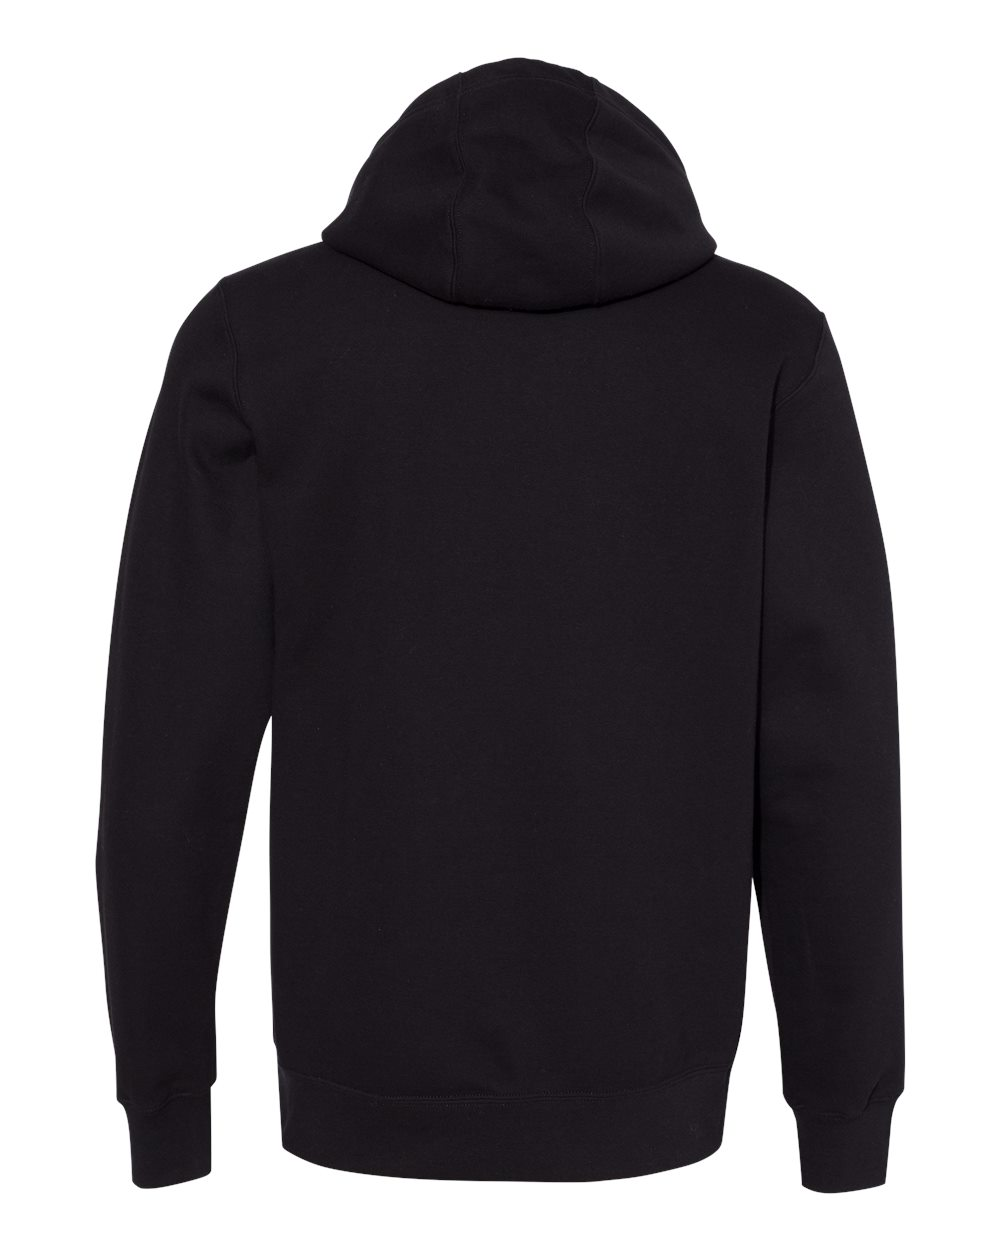 Russell-Athletic-Mens-Cotton-Rich-Fleece-Hooded-Sweatshirt-82ONSM-up-to-3XL miniature 10